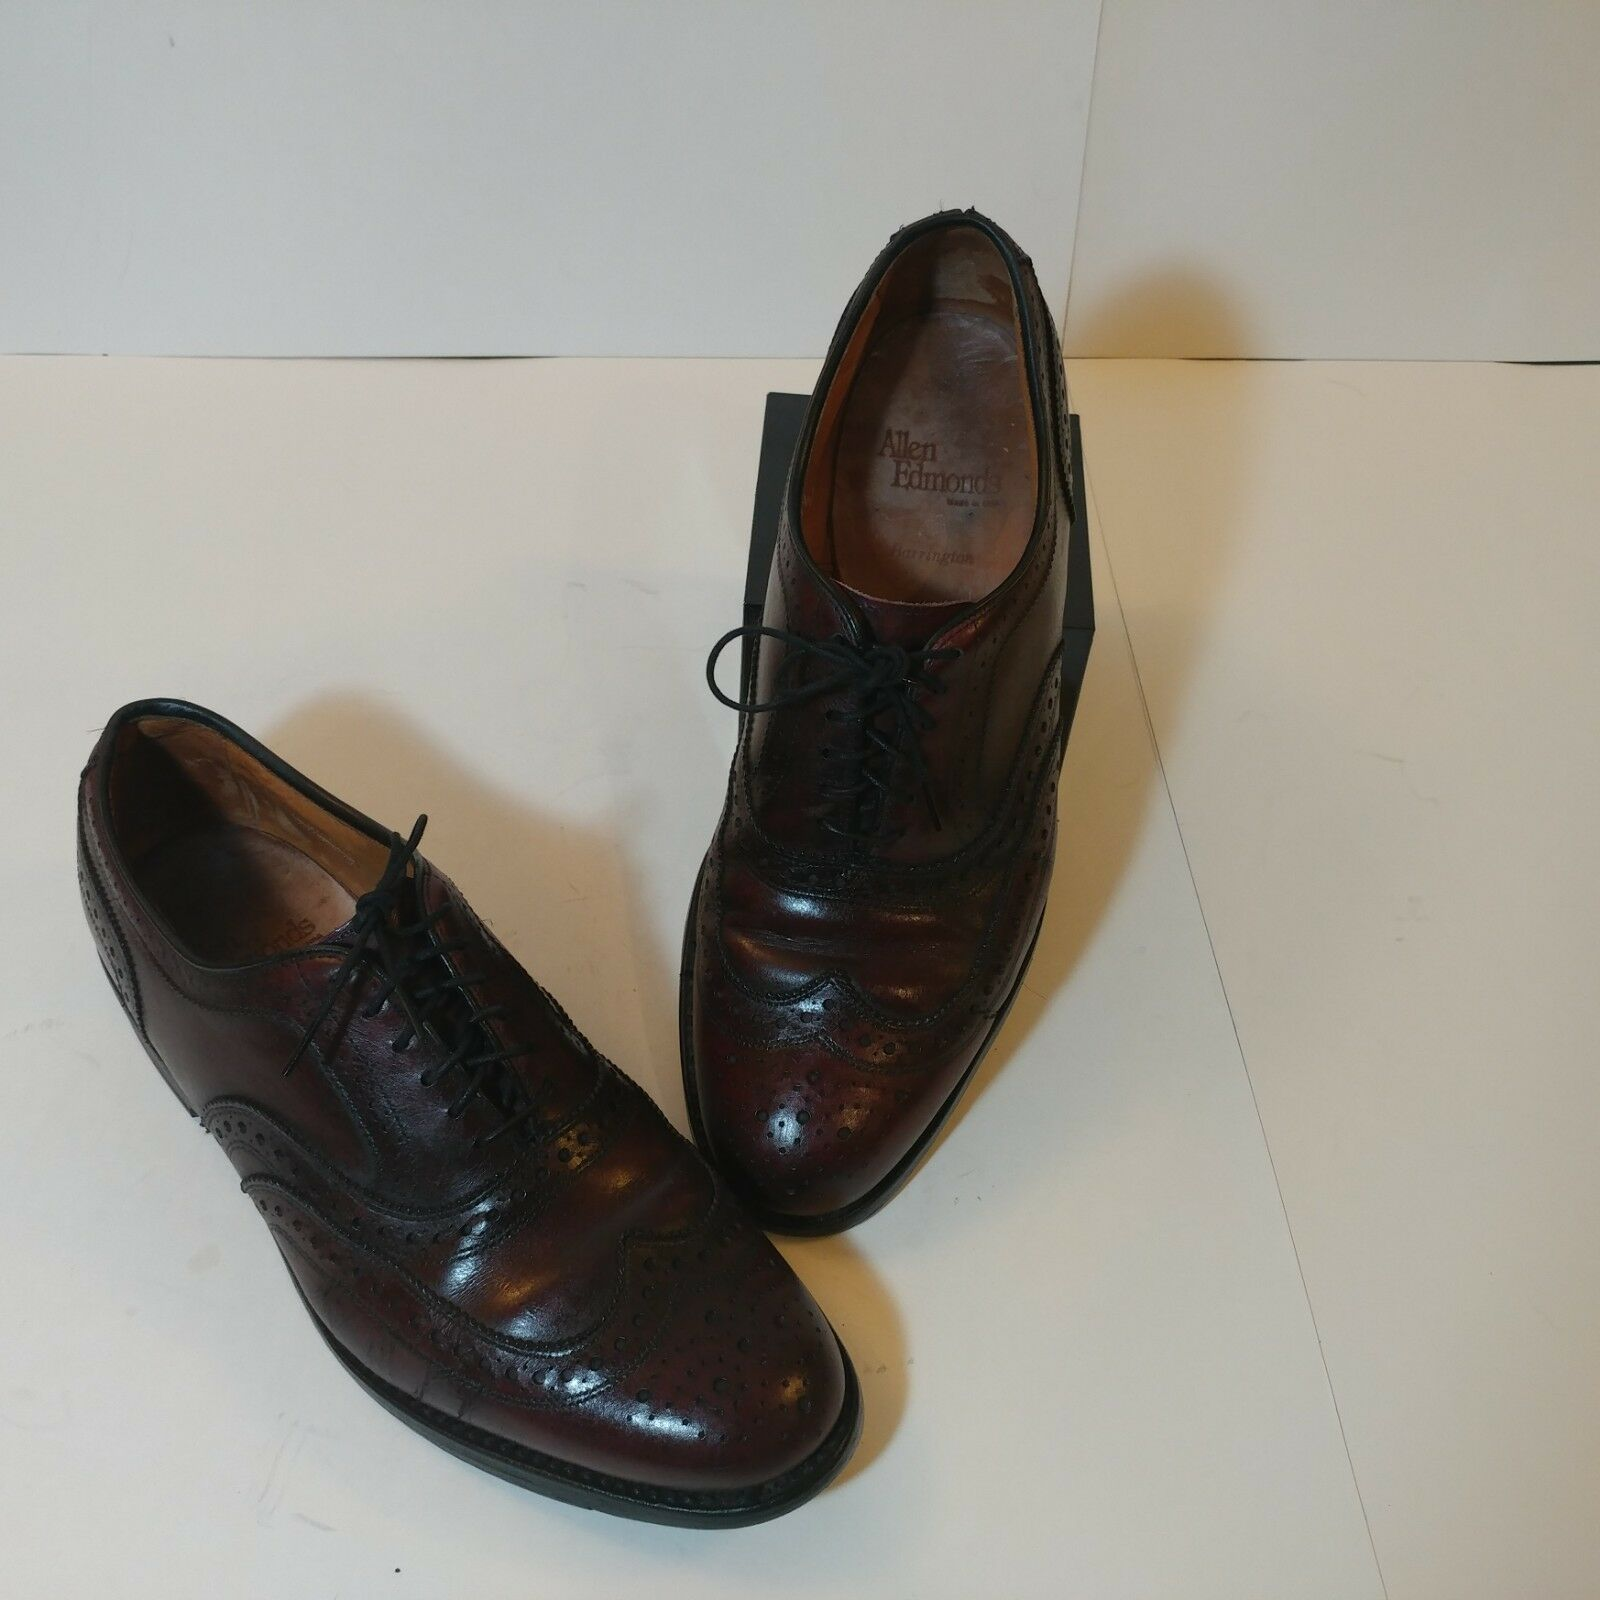 Allen Edmonds Barrington Wingtip Mens Leather shoe Merlot Size 9 1 2 C 5471